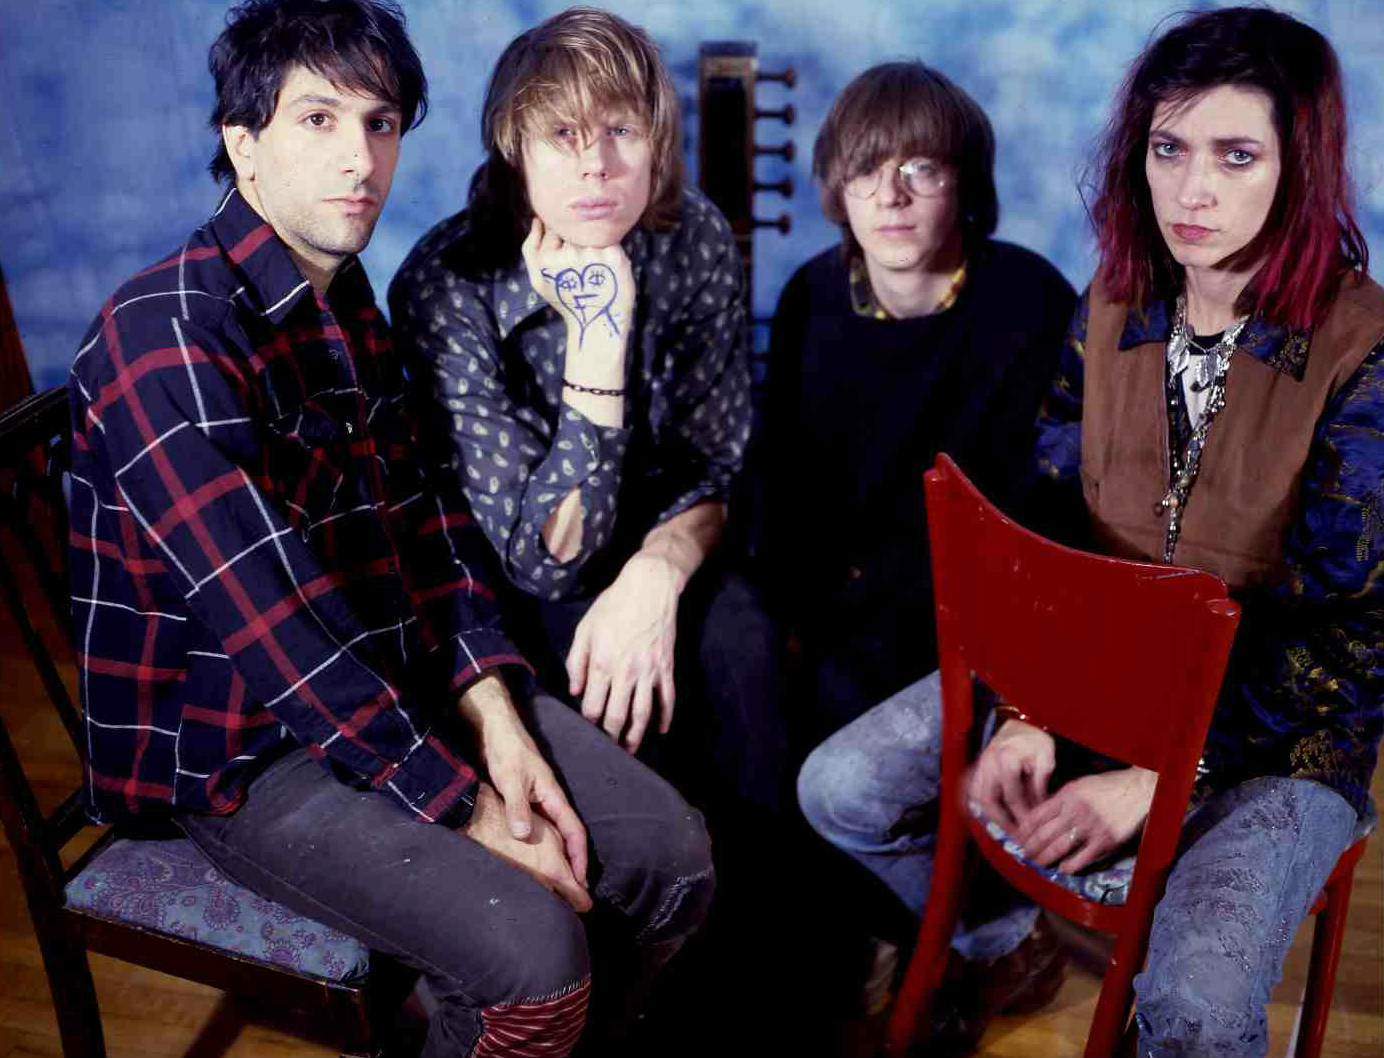 Sonic Youth na fase entre os discos Bad Moon Rising e Evol